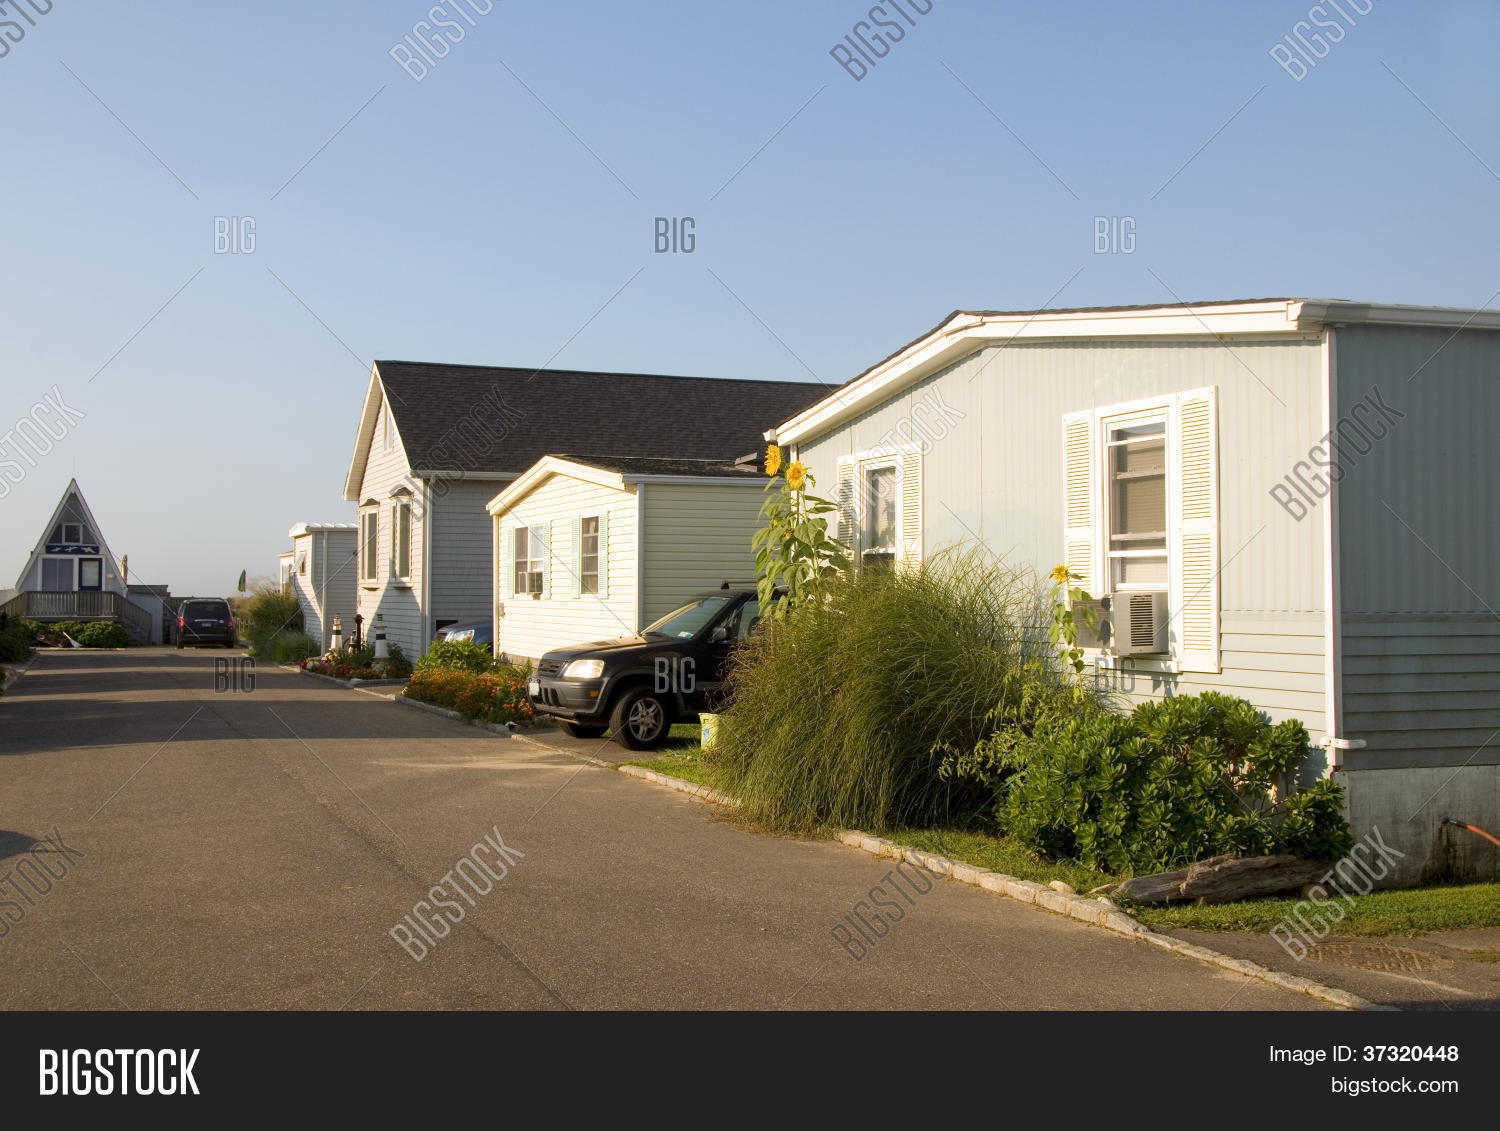 Mobile homes trailer park image photo bigstock - The mobile house on the unstable island ...